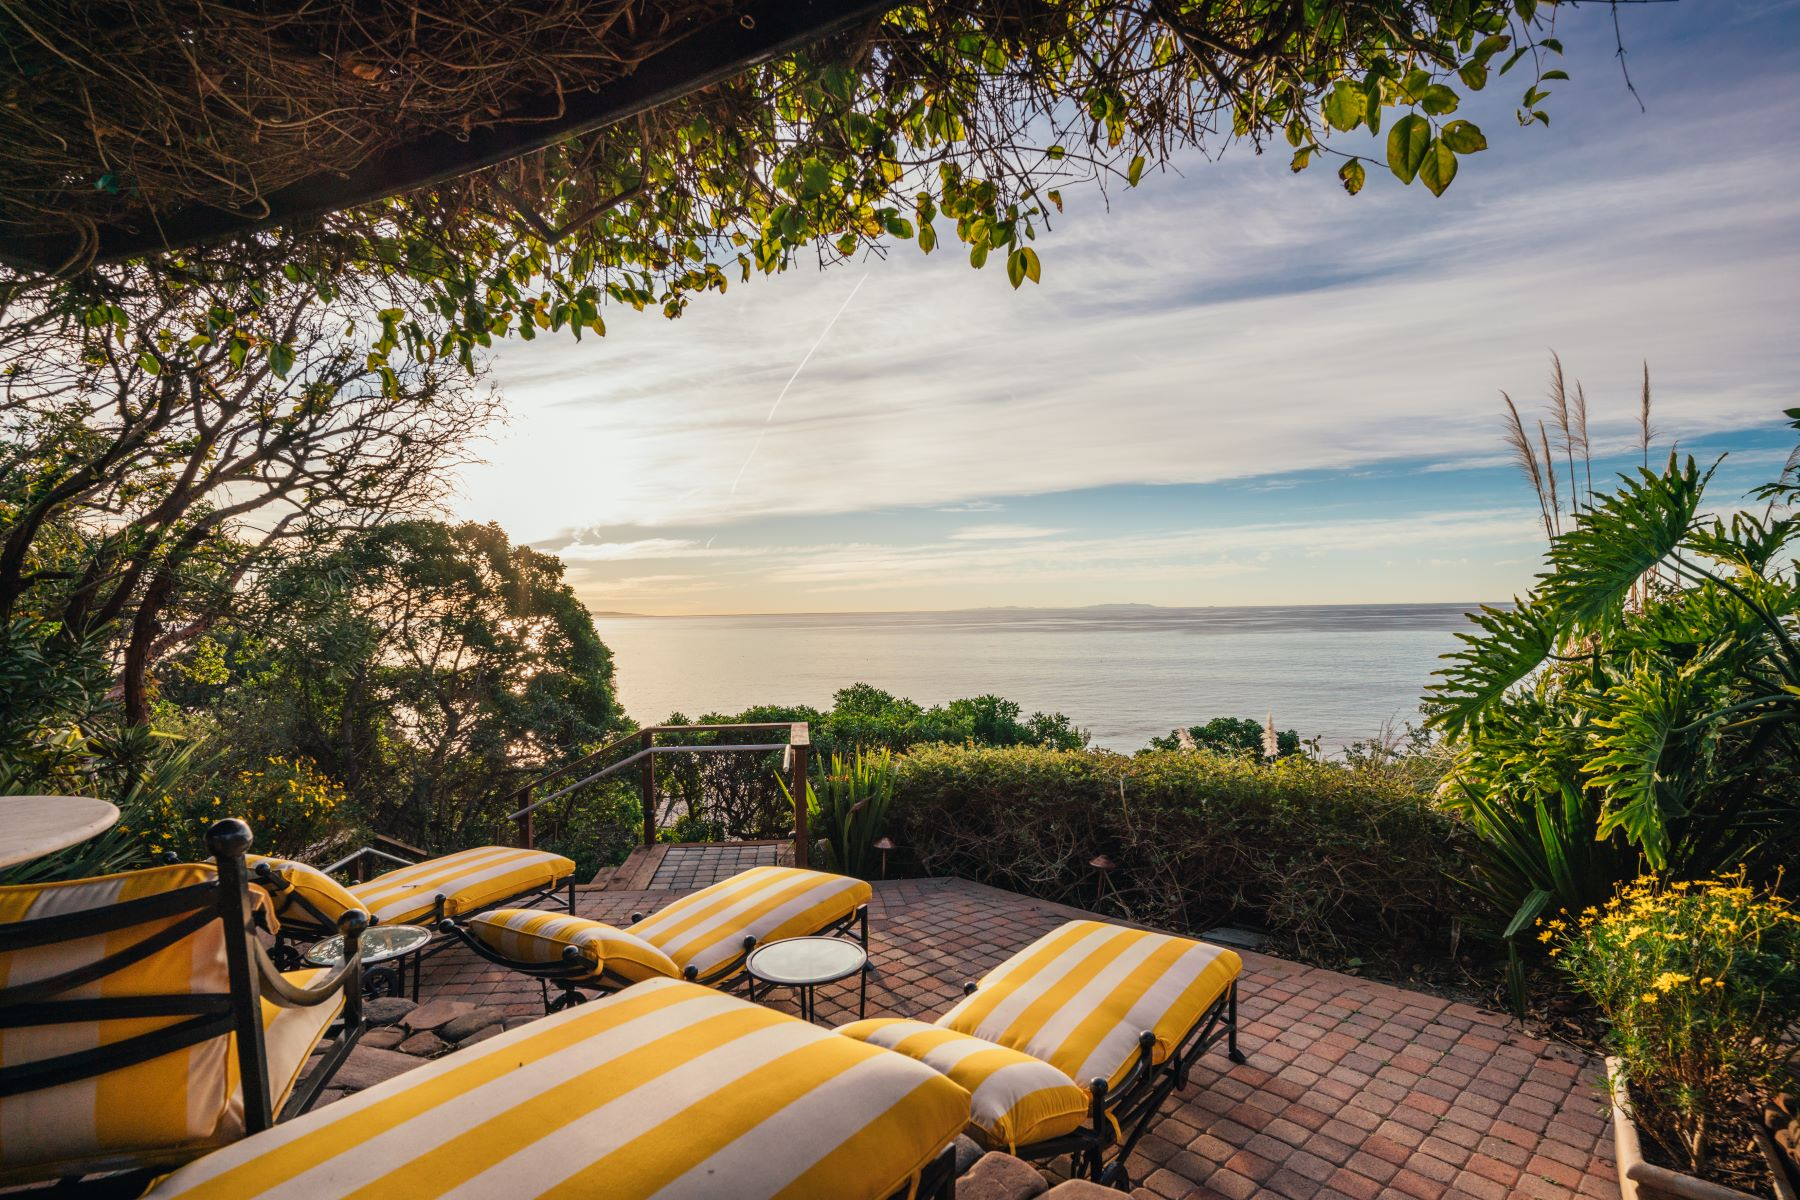 Additional photo for property listing at Mar de Amor 27930 Pacific Coast Highway, Malibu, Kalifornien 90265 Förenta staterna